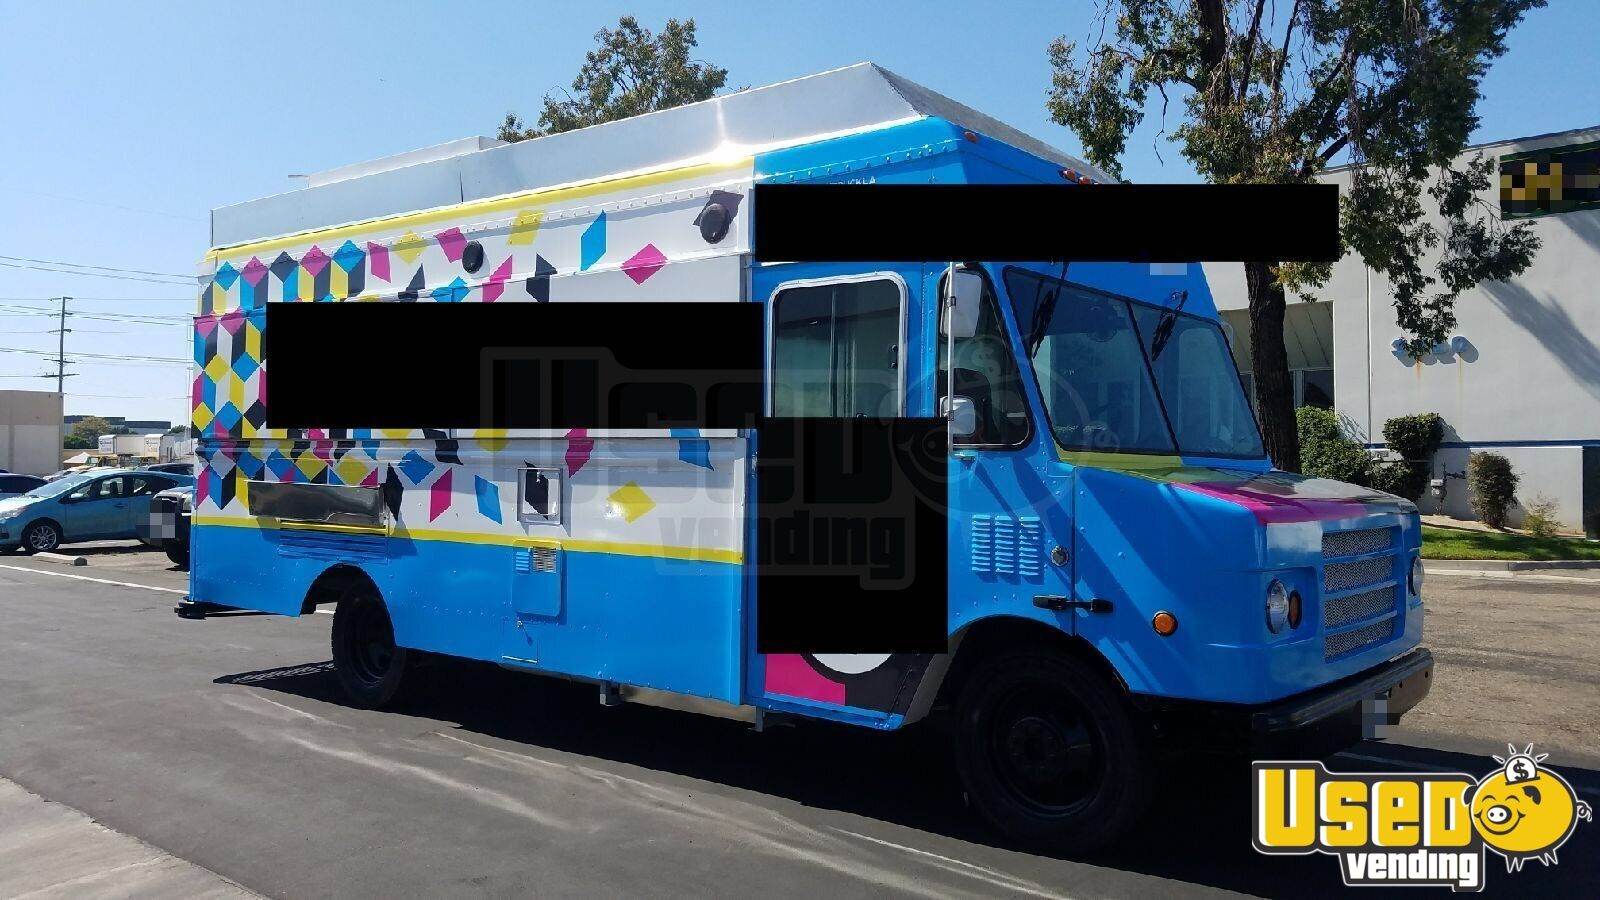 2003 Workhorse All-purpose Food Truck California Diesel Engine for Sale - 1